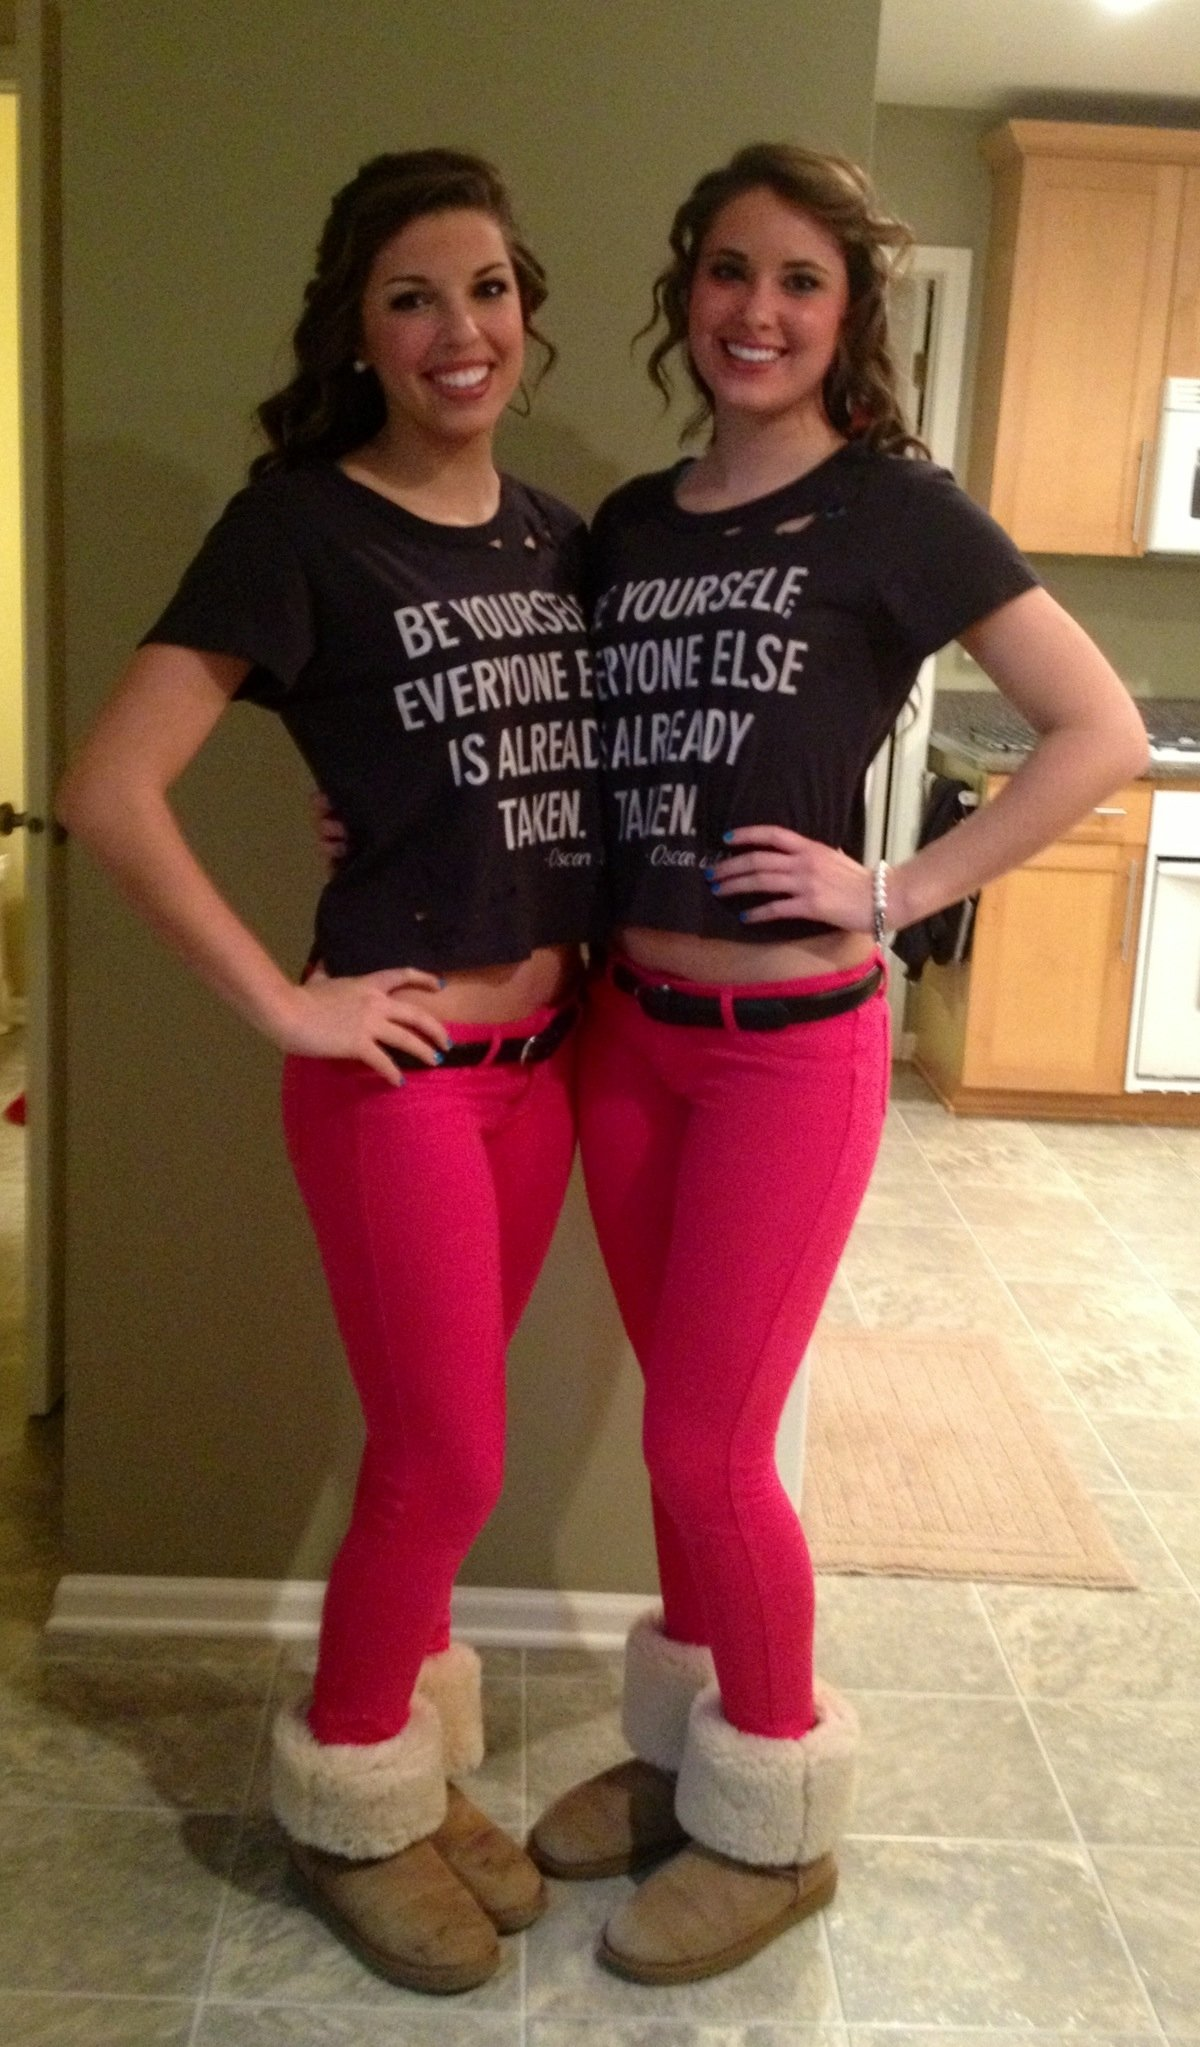 friends laugh source 10 lovable halloween costume ideas for 2 people